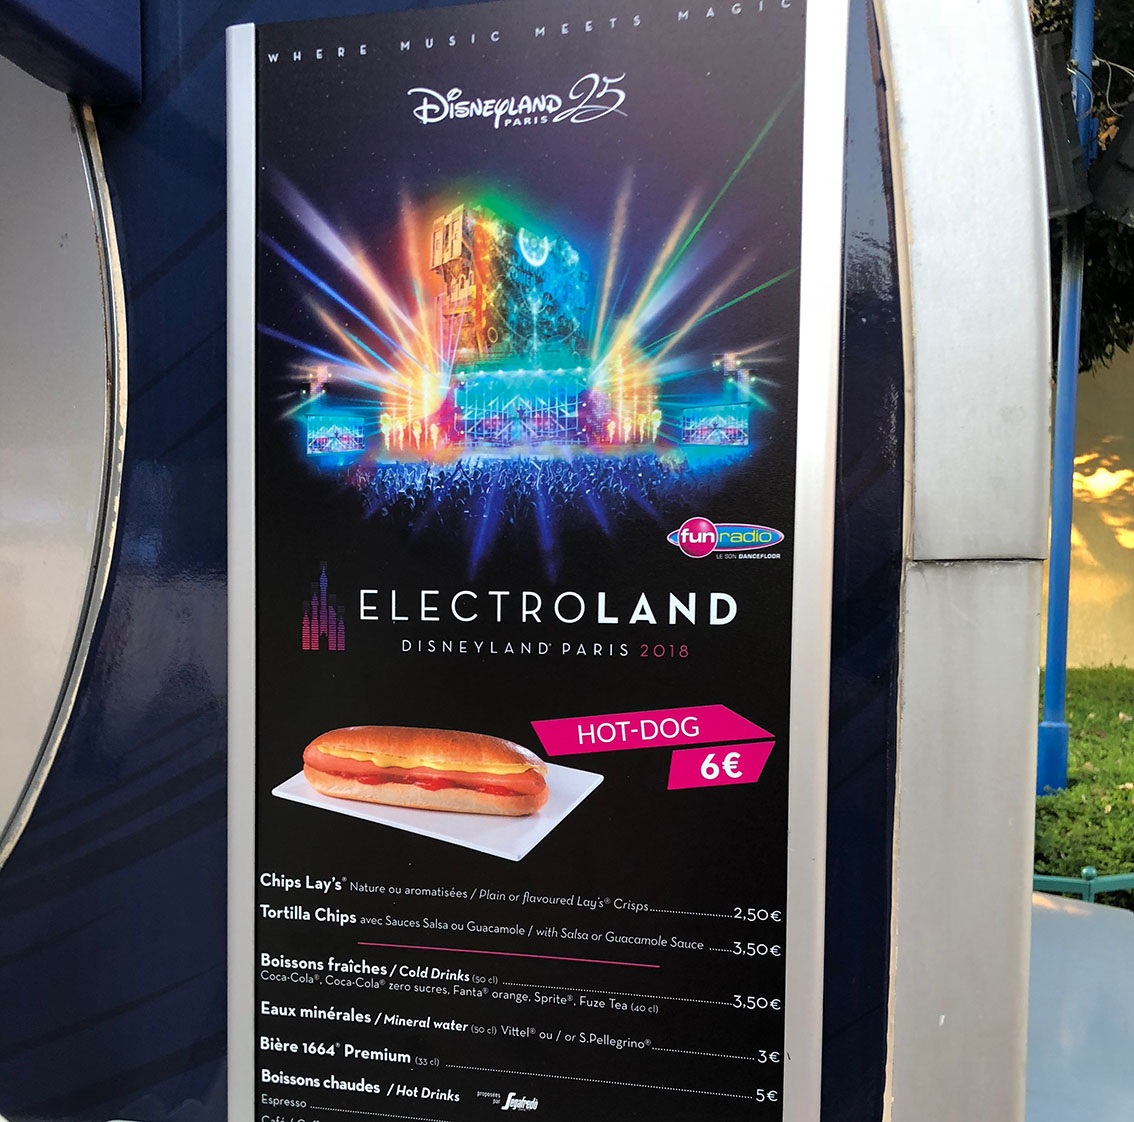 The food carts at Electroland at Disneyland Paris